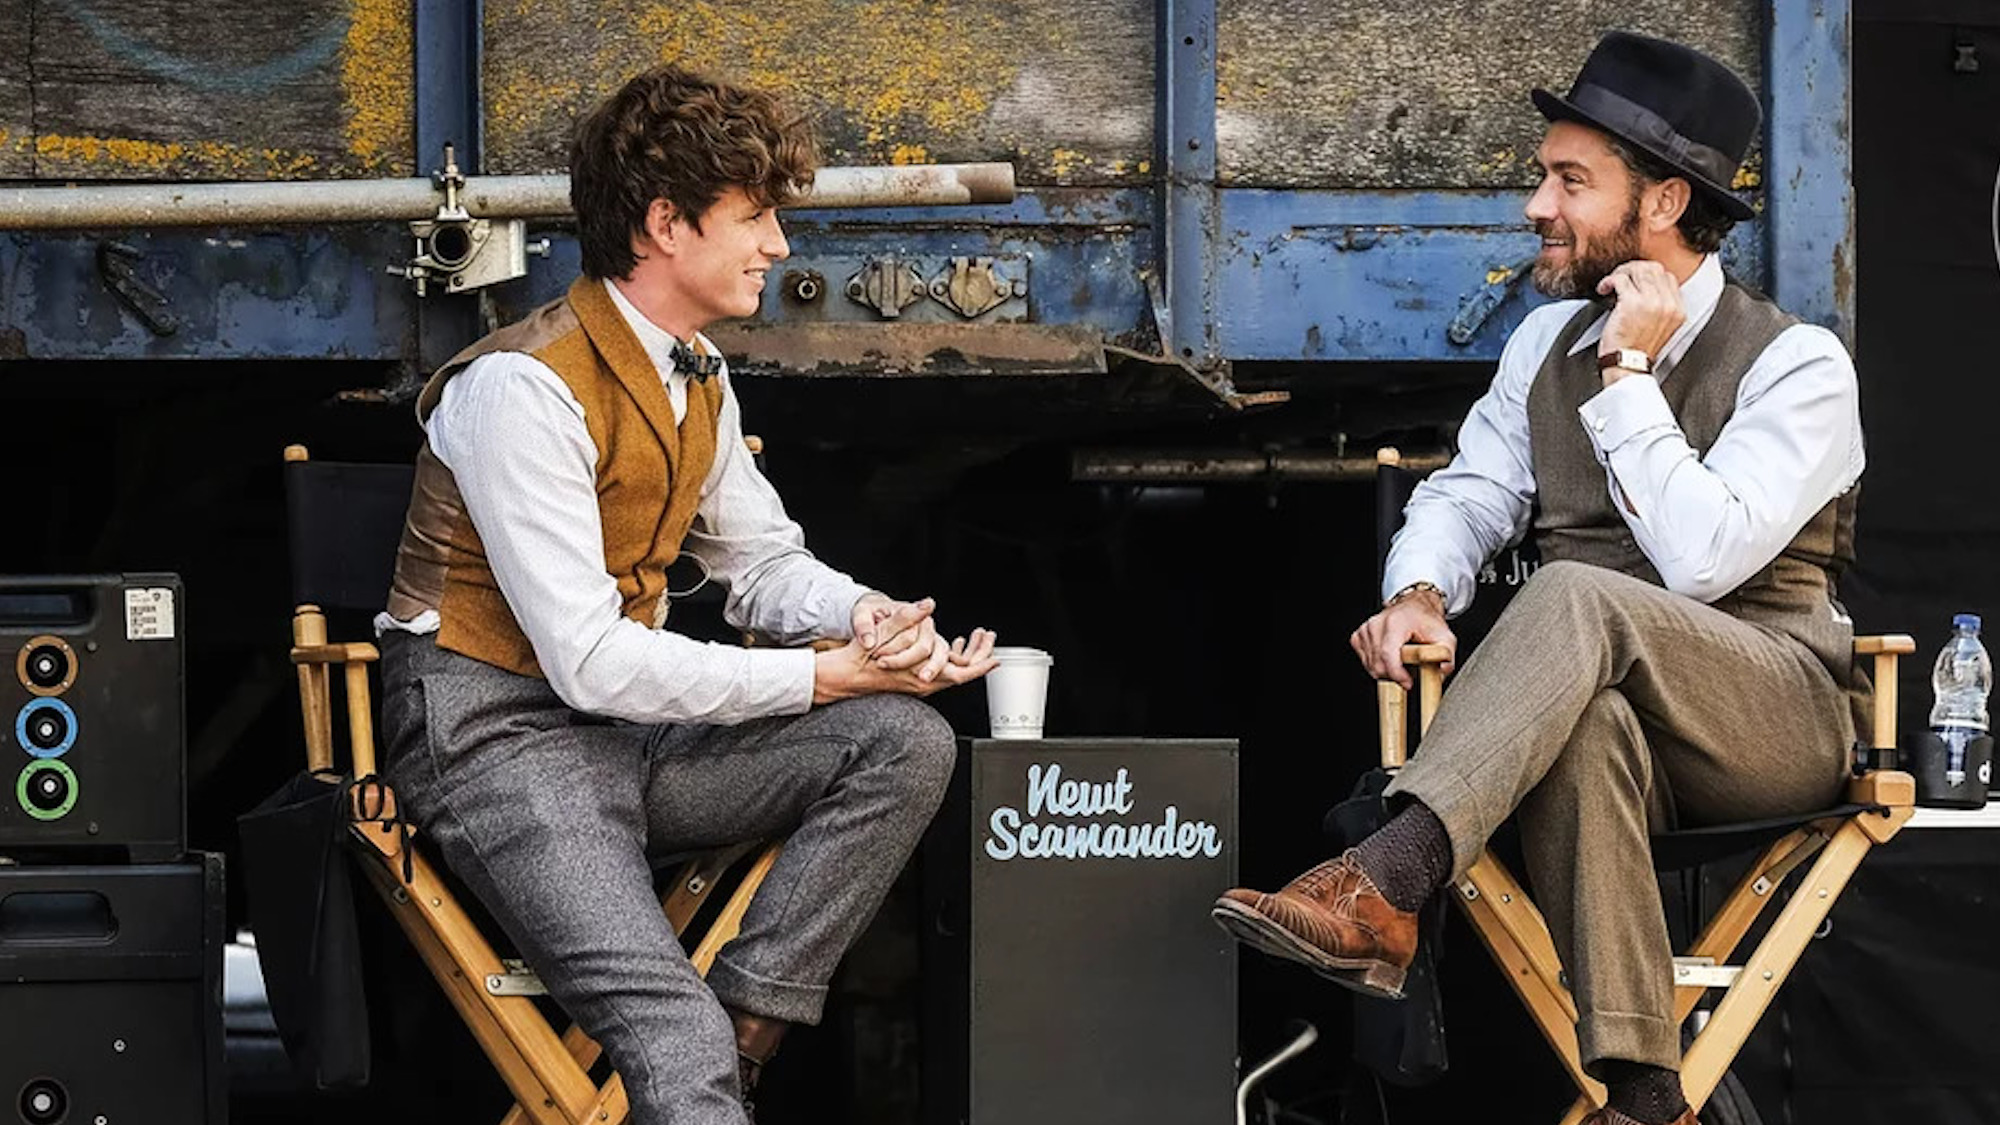 Eddie Redmayne and Jude Law - Fantastic Beasts: The Crimes of Grindelwald